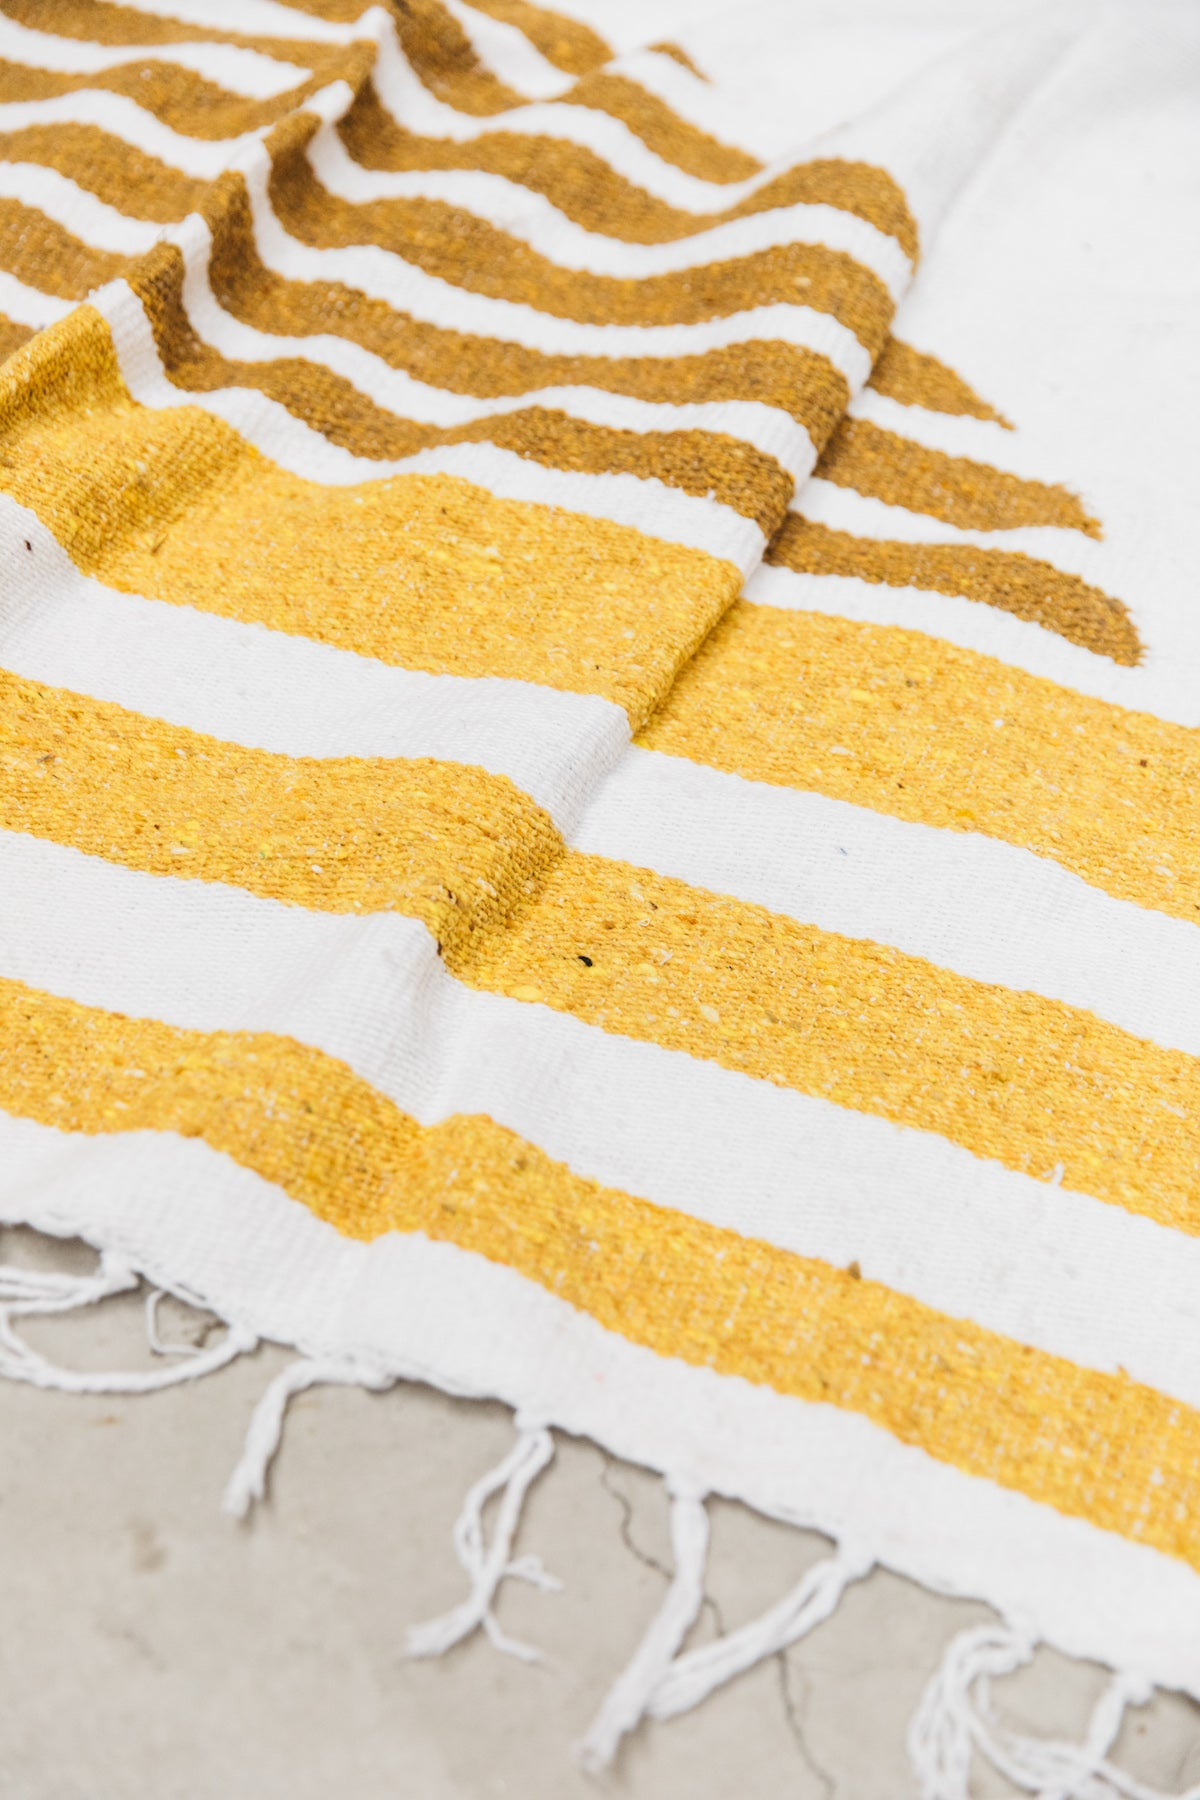 California Sunset: Yellow & White Striped Mexican Blanket